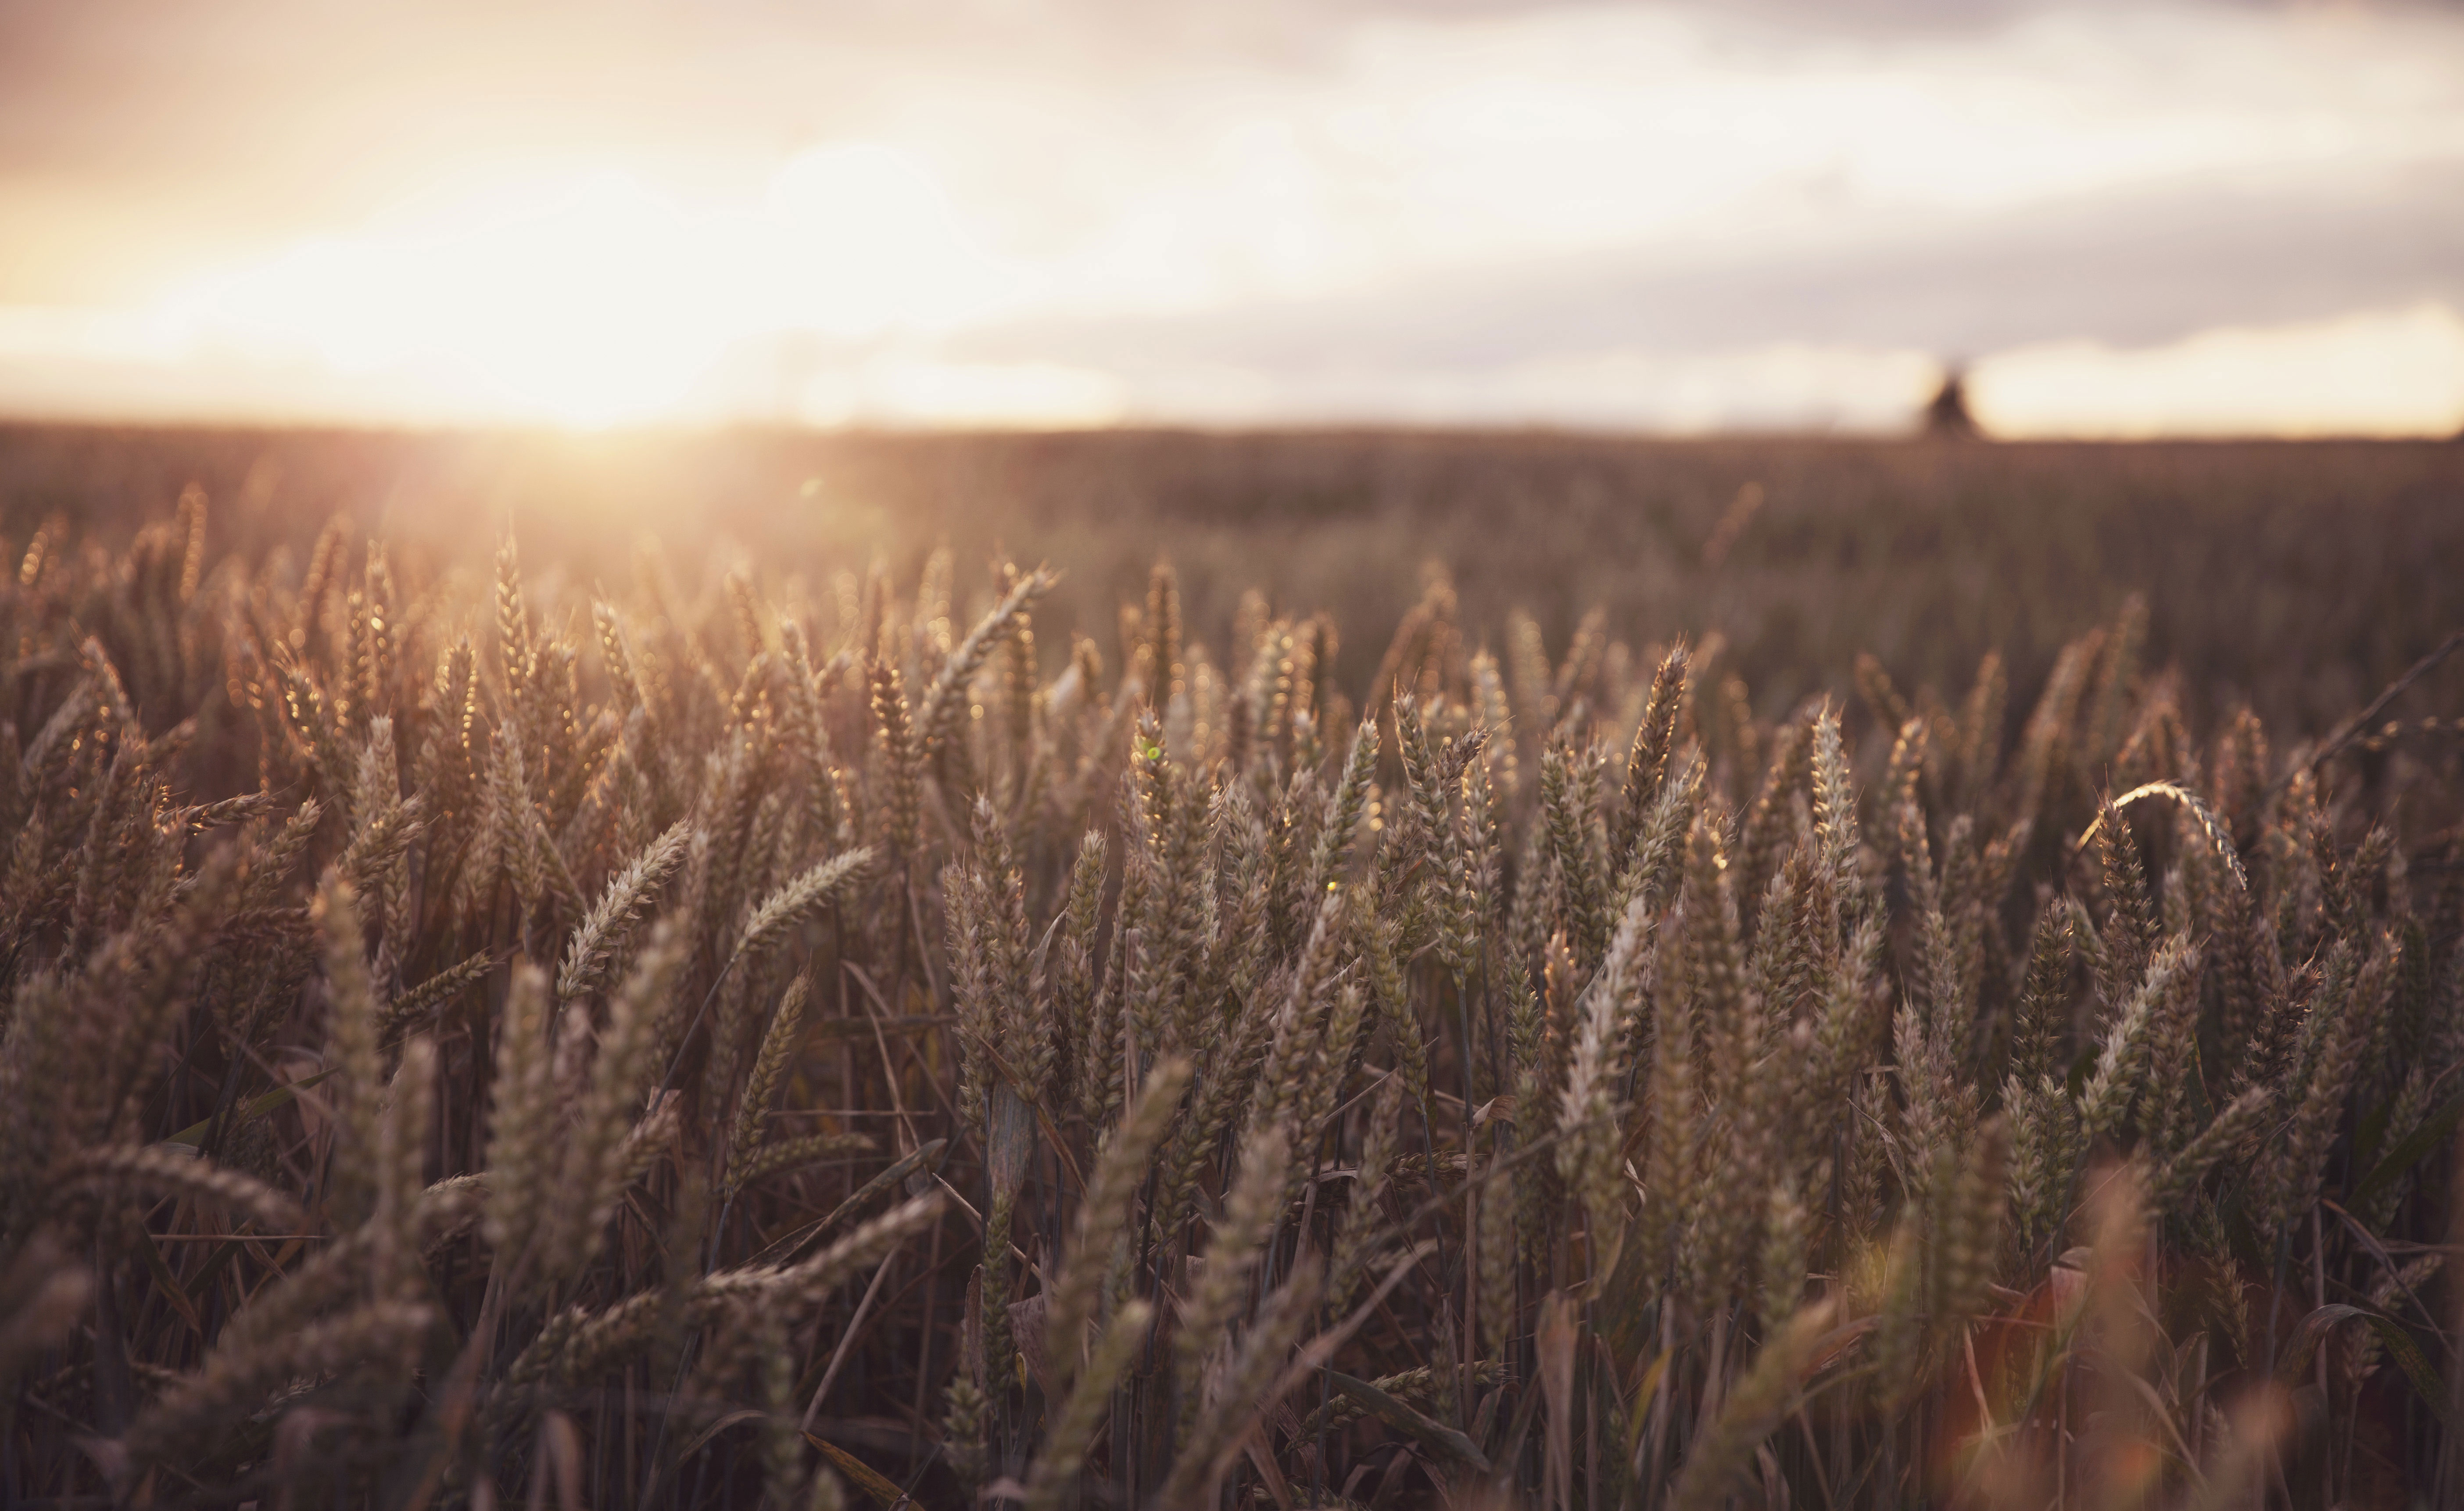 Does Your Farm Qualify for Research & Development Tax Relief?